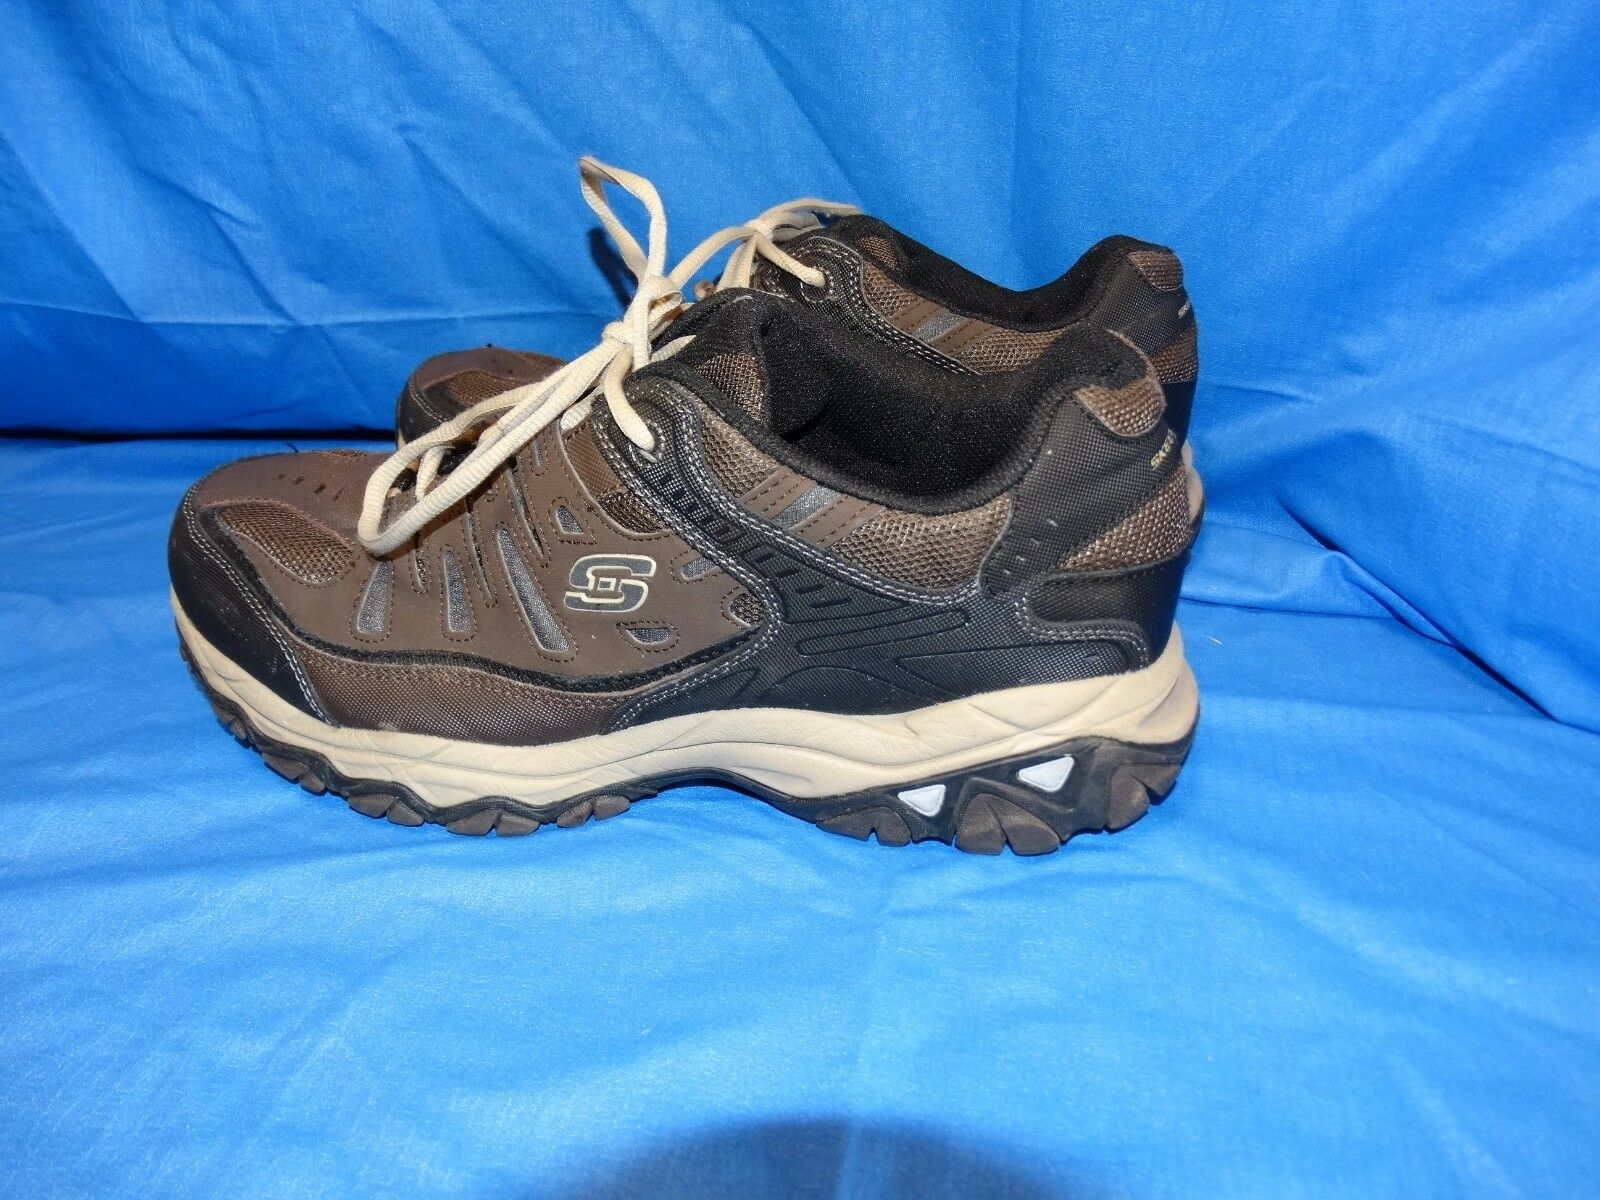 19176  Mens Skechers Athletic shoes  shoes Size 14 W  Casual Training Running